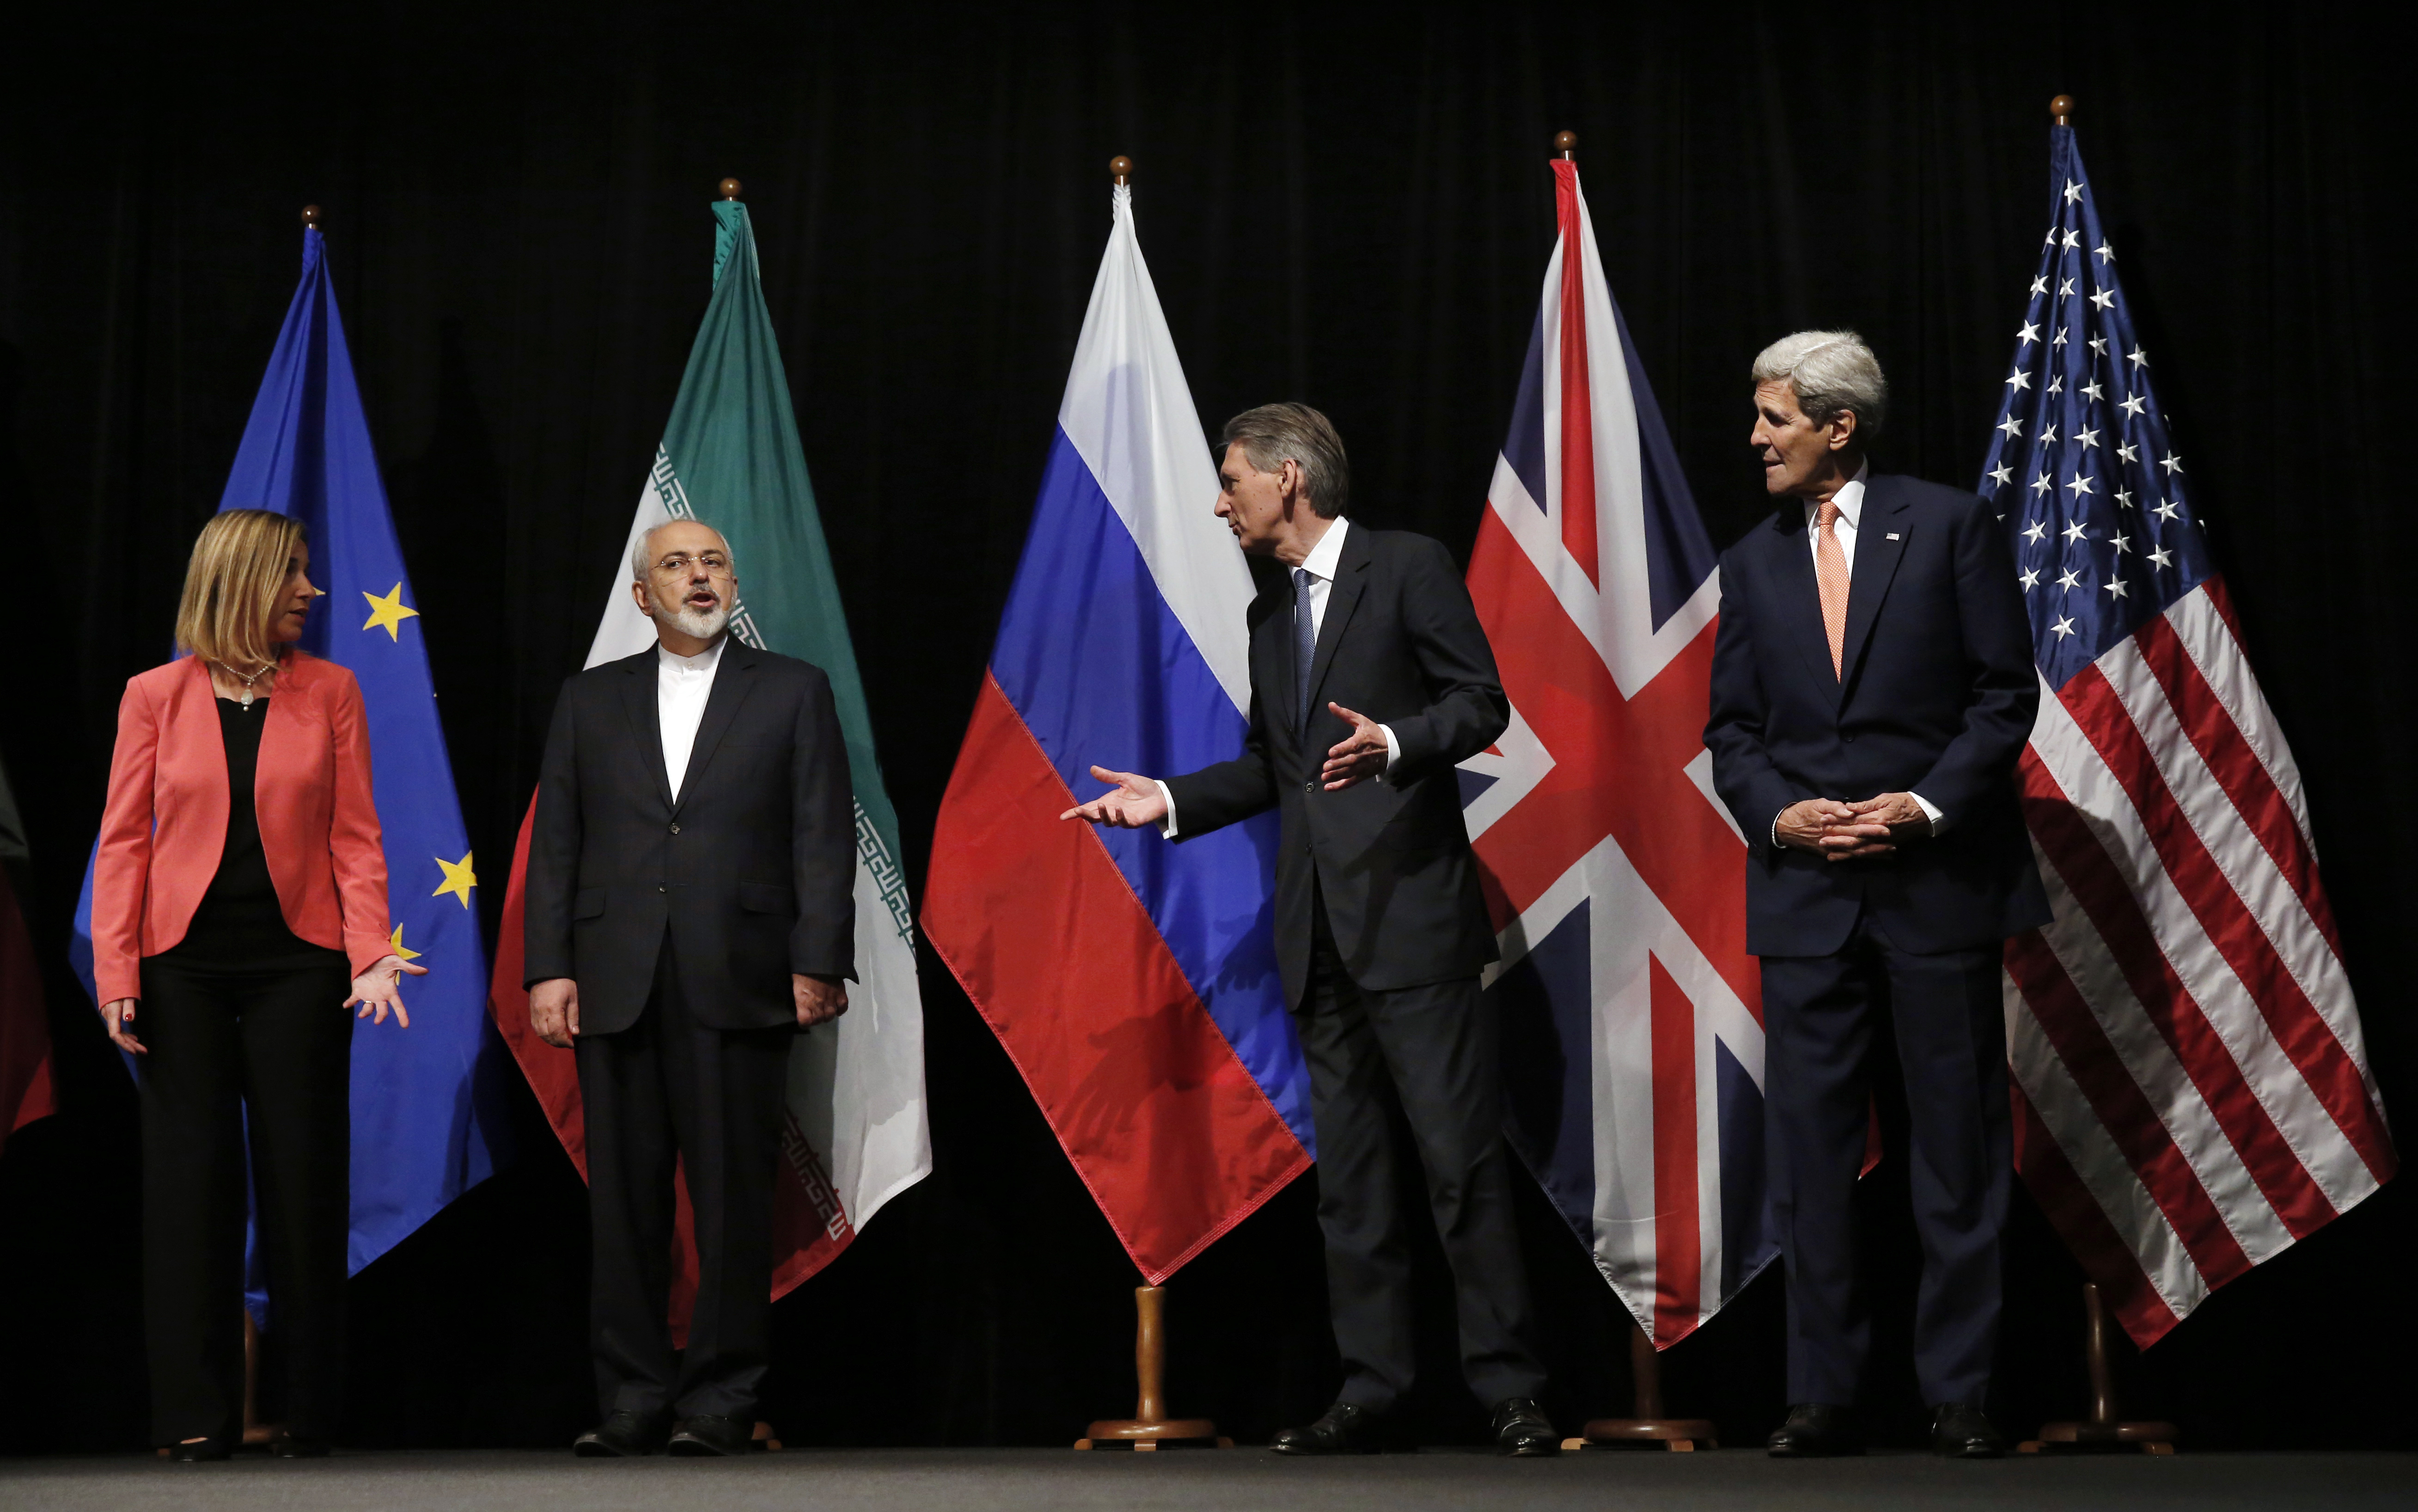 BBG networks provide unparalleled coverage of Iran agreement